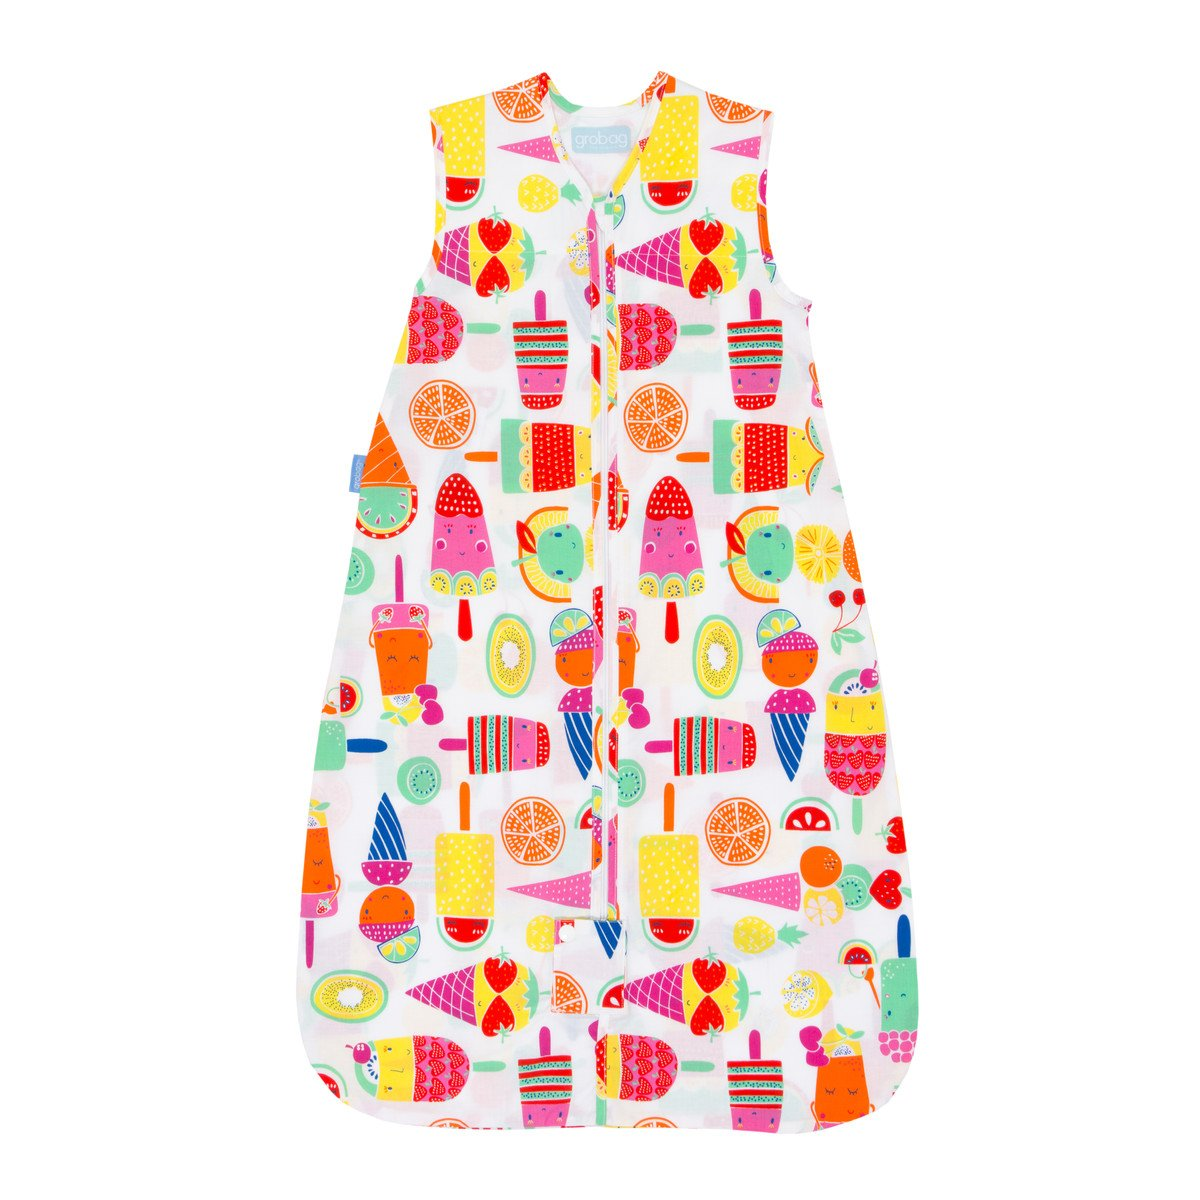 Grobag Travel Baby Sleeping Bag - Fruit Cocktail 0.5 Tog (18-36 Months)